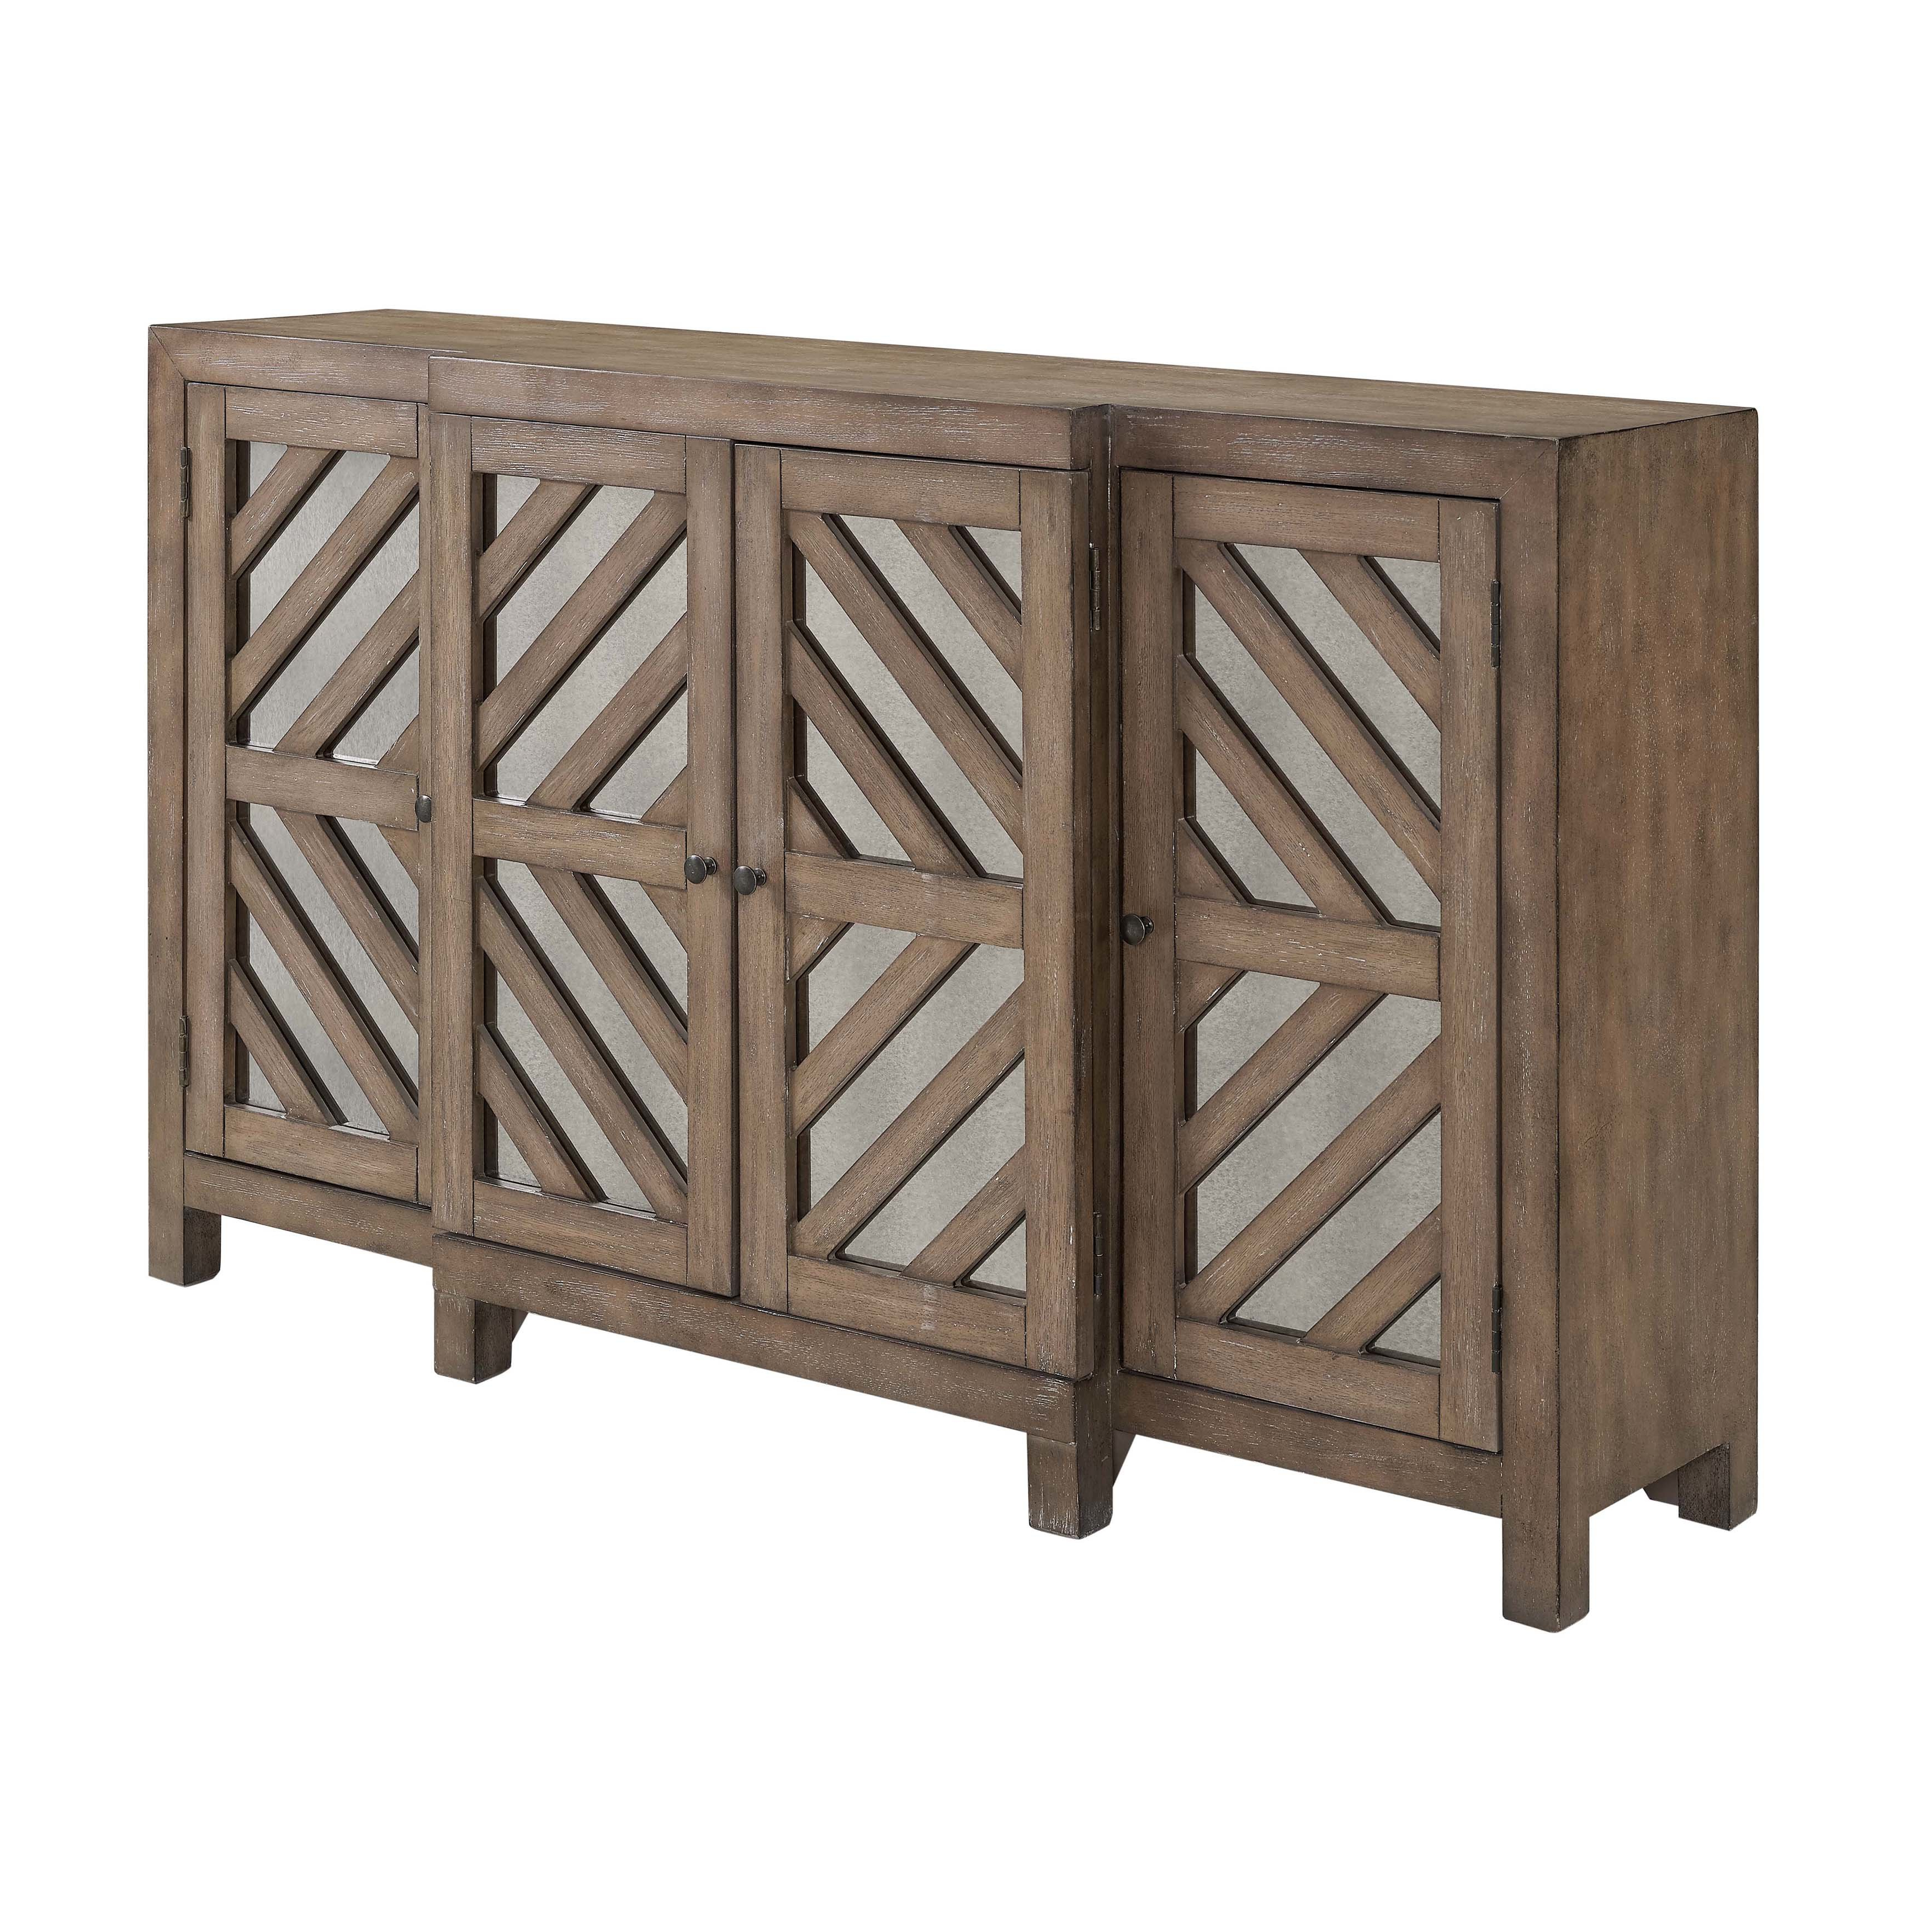 Farmhouse & Rustic Sideboards & Buffets | Birch Lane For Togal Contemporary White/light Oak Dining Buffets (View 4 of 20)